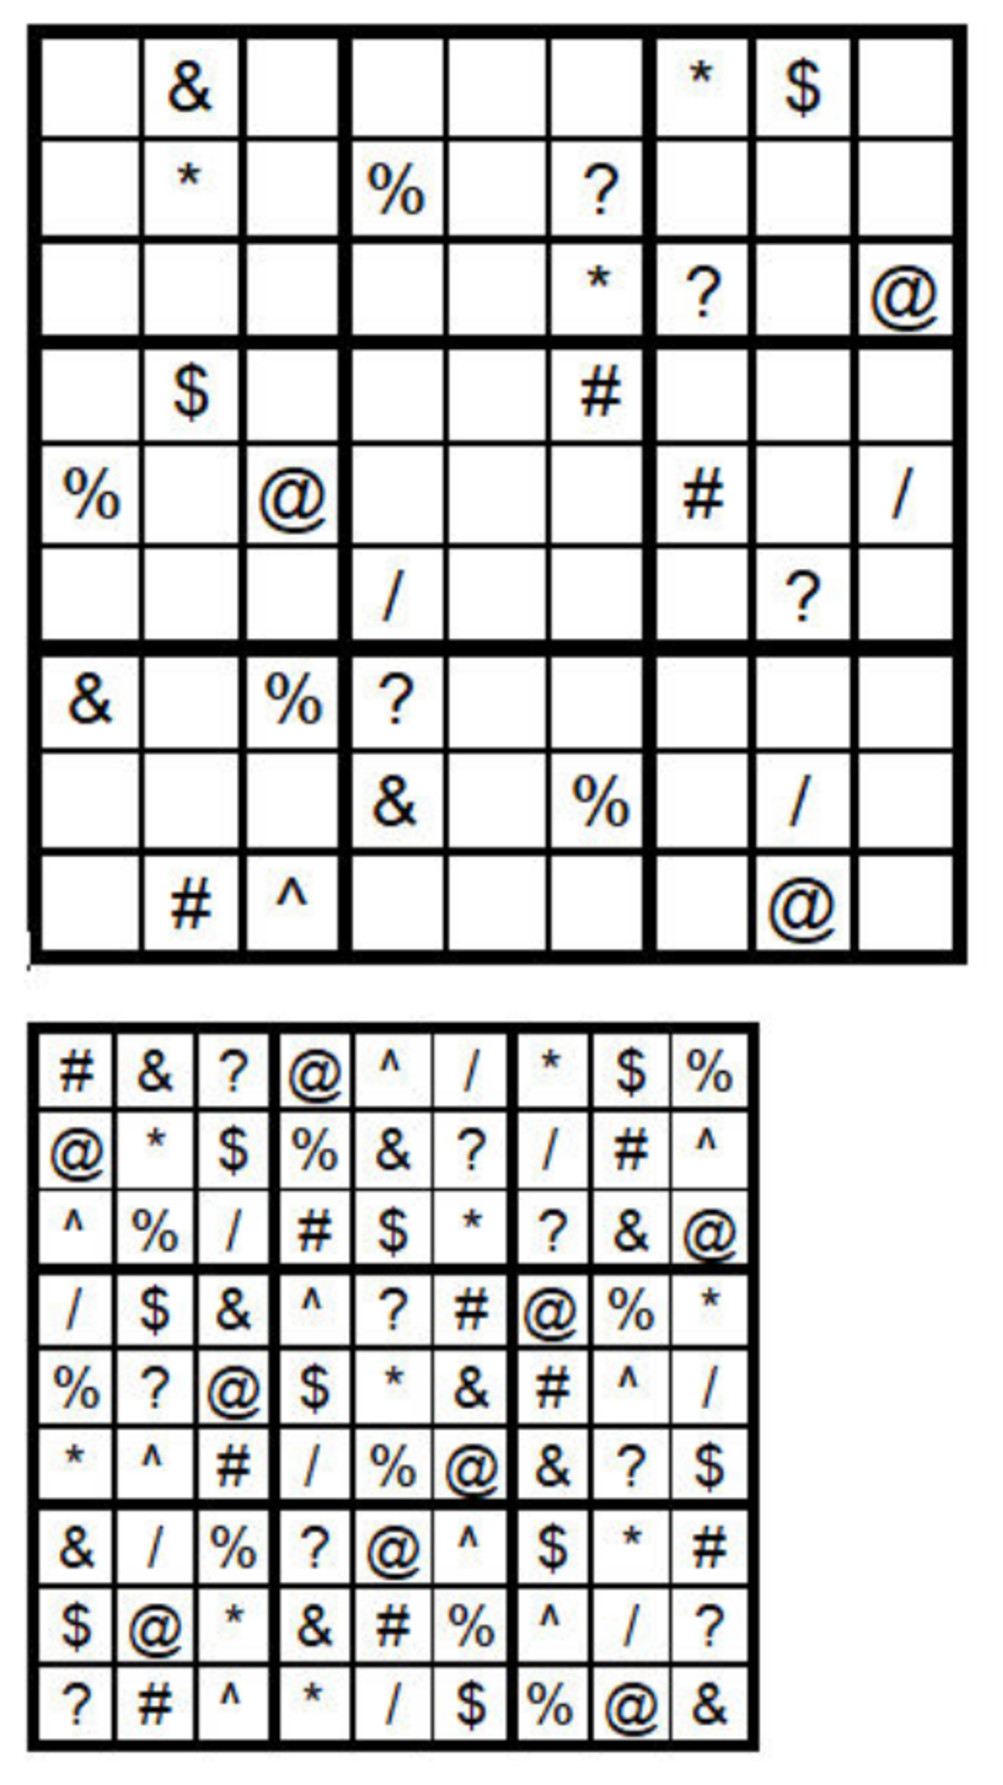 Do Never Been Published Sudoku Puzzles For You